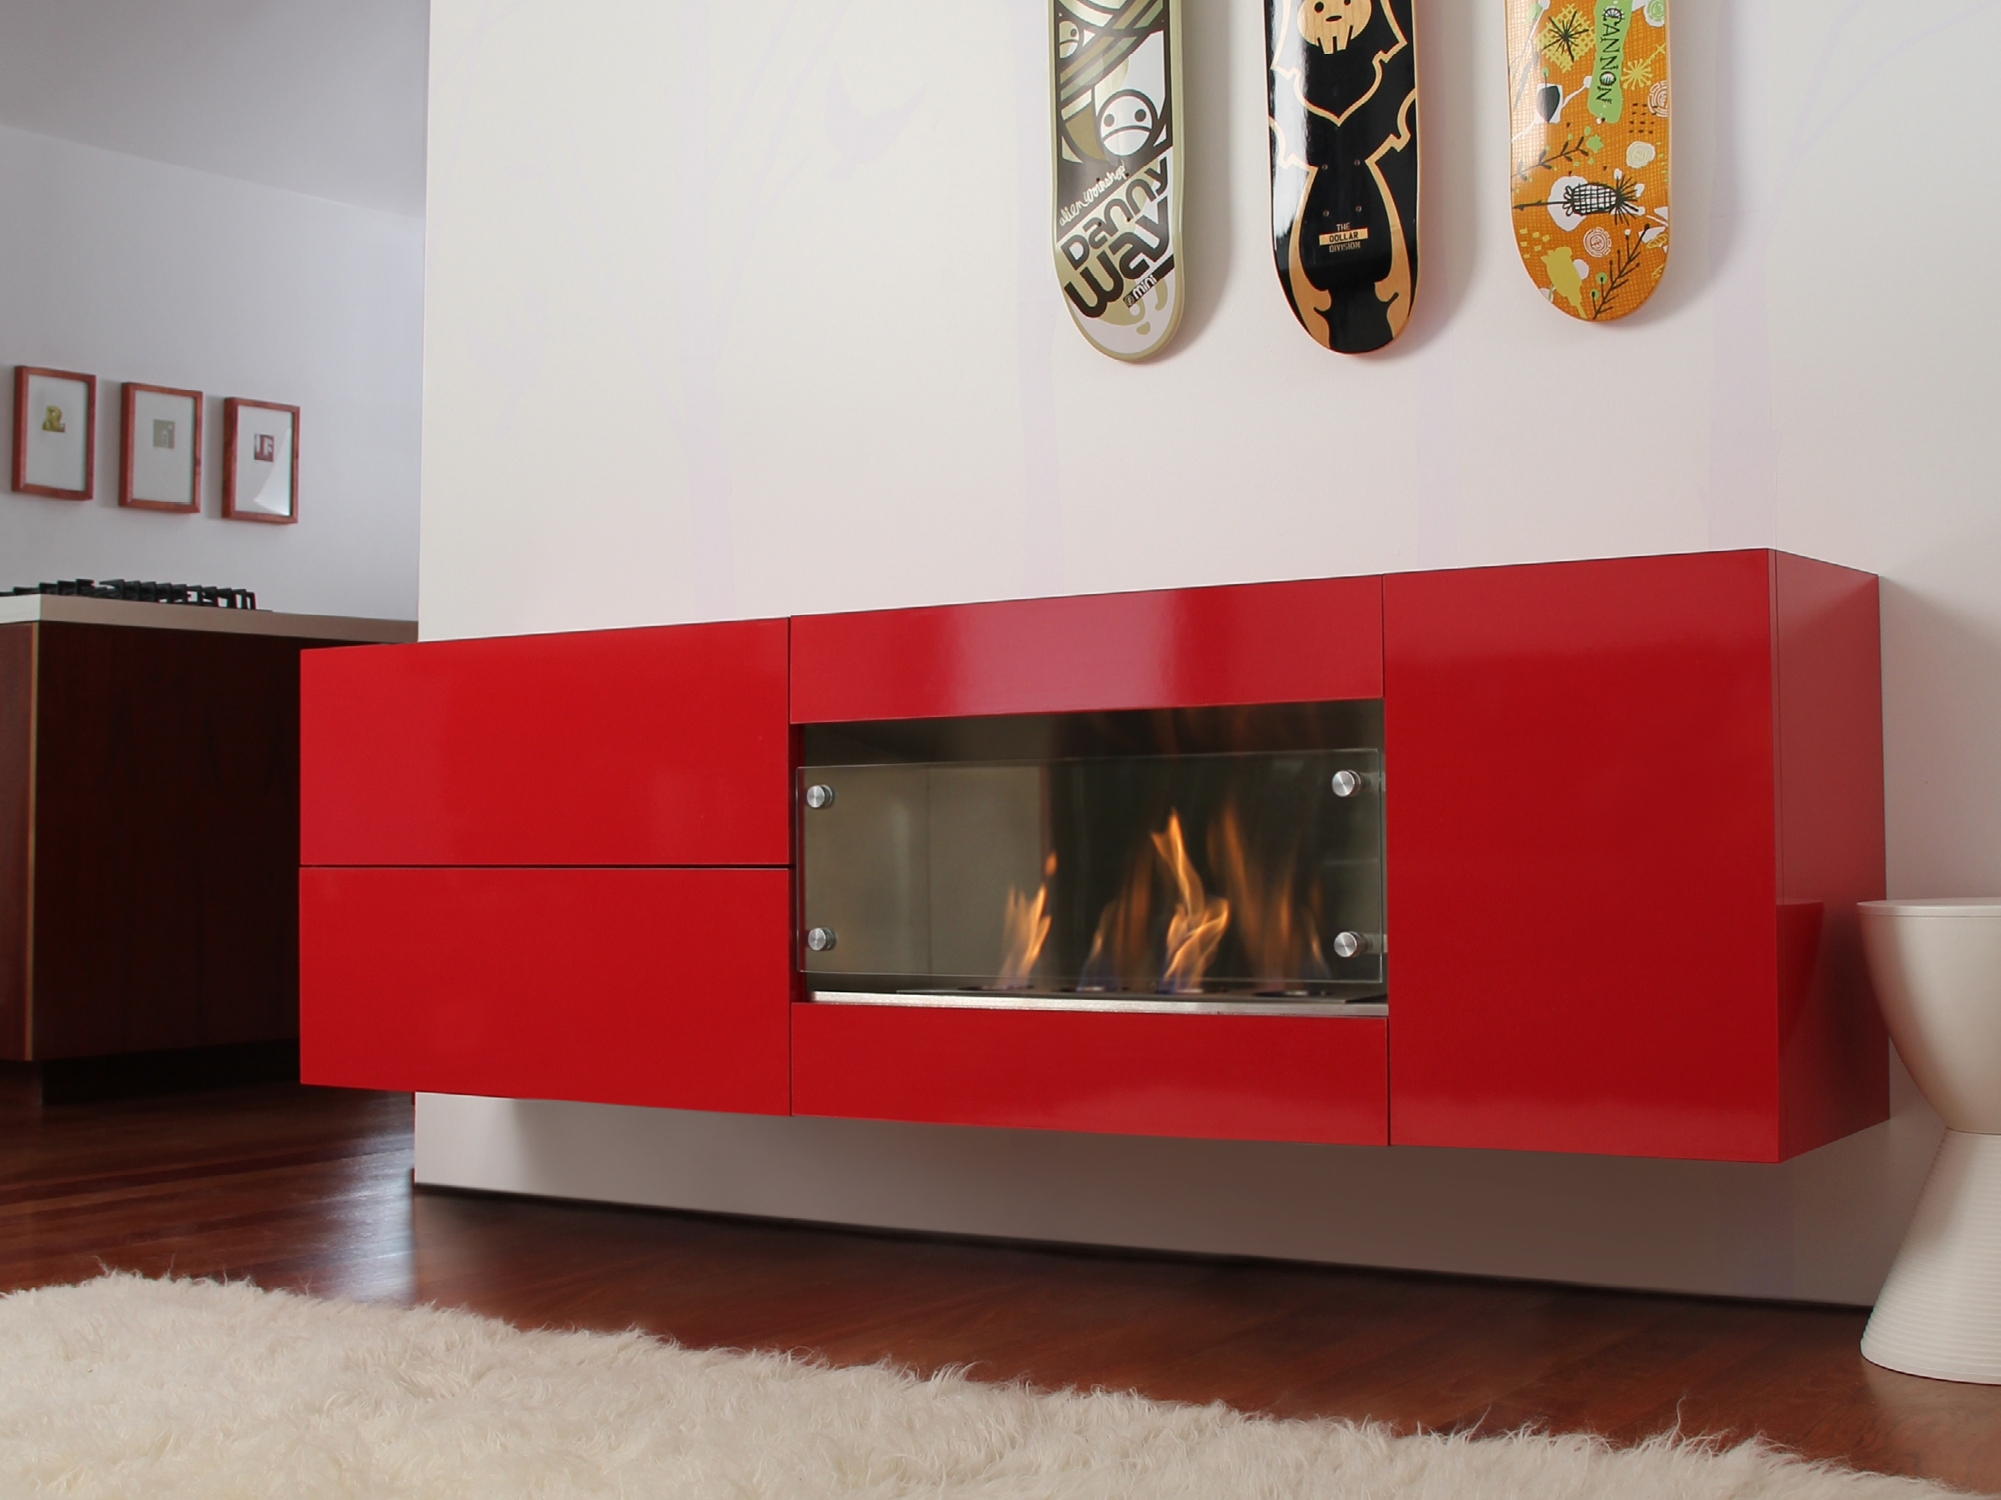 Terra Flame Home The Art Of Essential Living Habitat Standing Fireplace Living Room Designs Living Room Interior